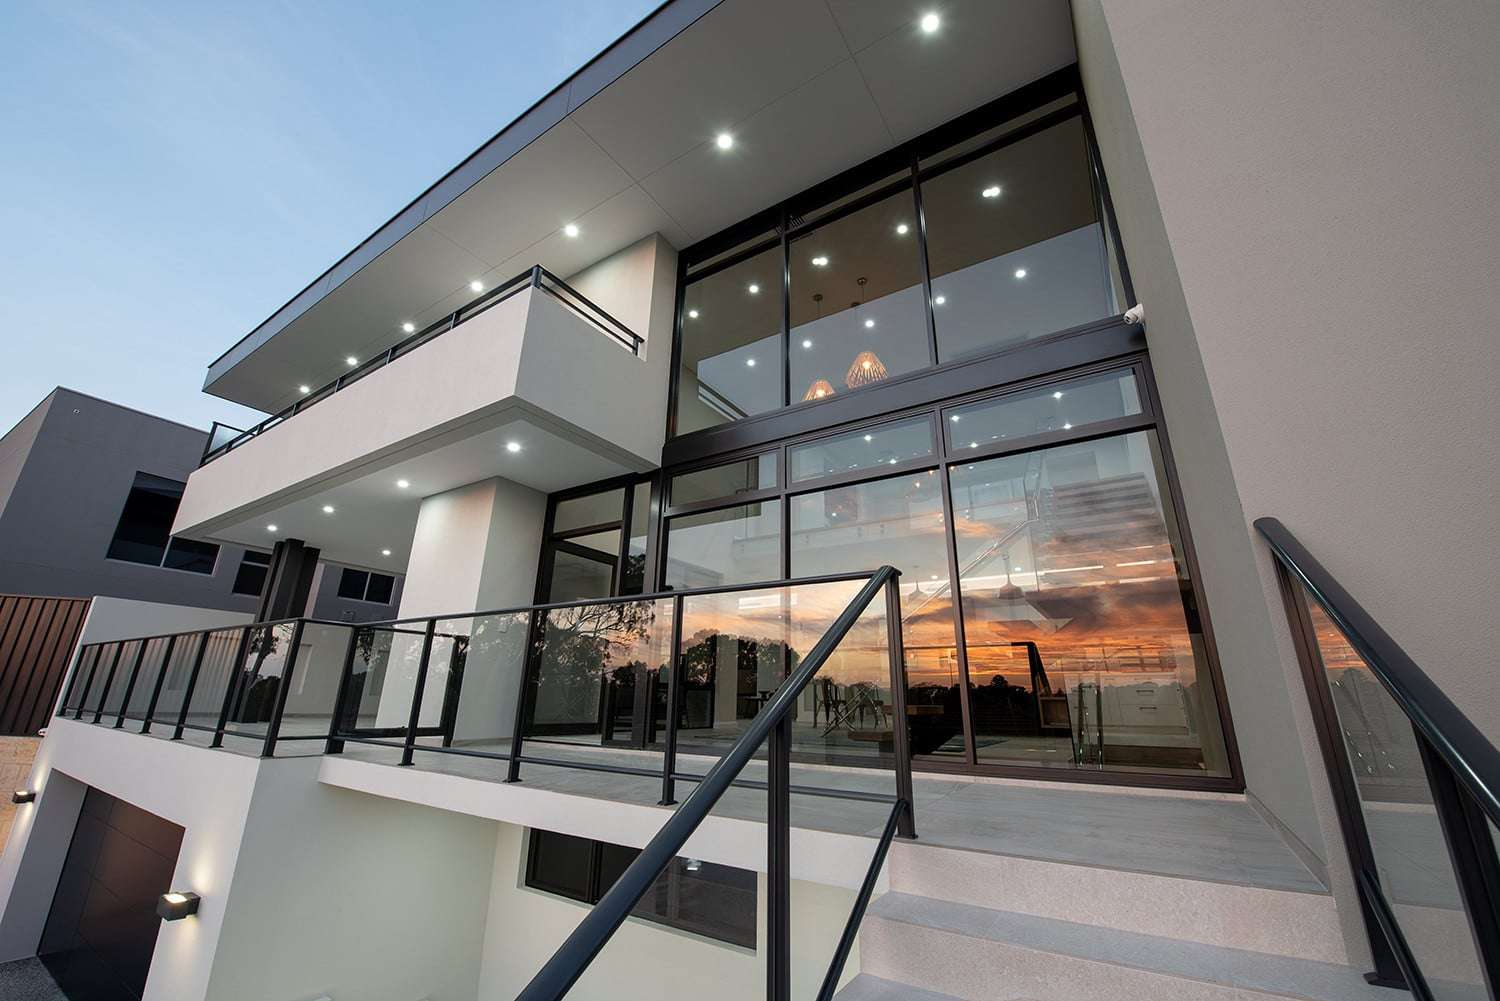 Floor to ceiling Jason Commercial Windows create a striking elevation